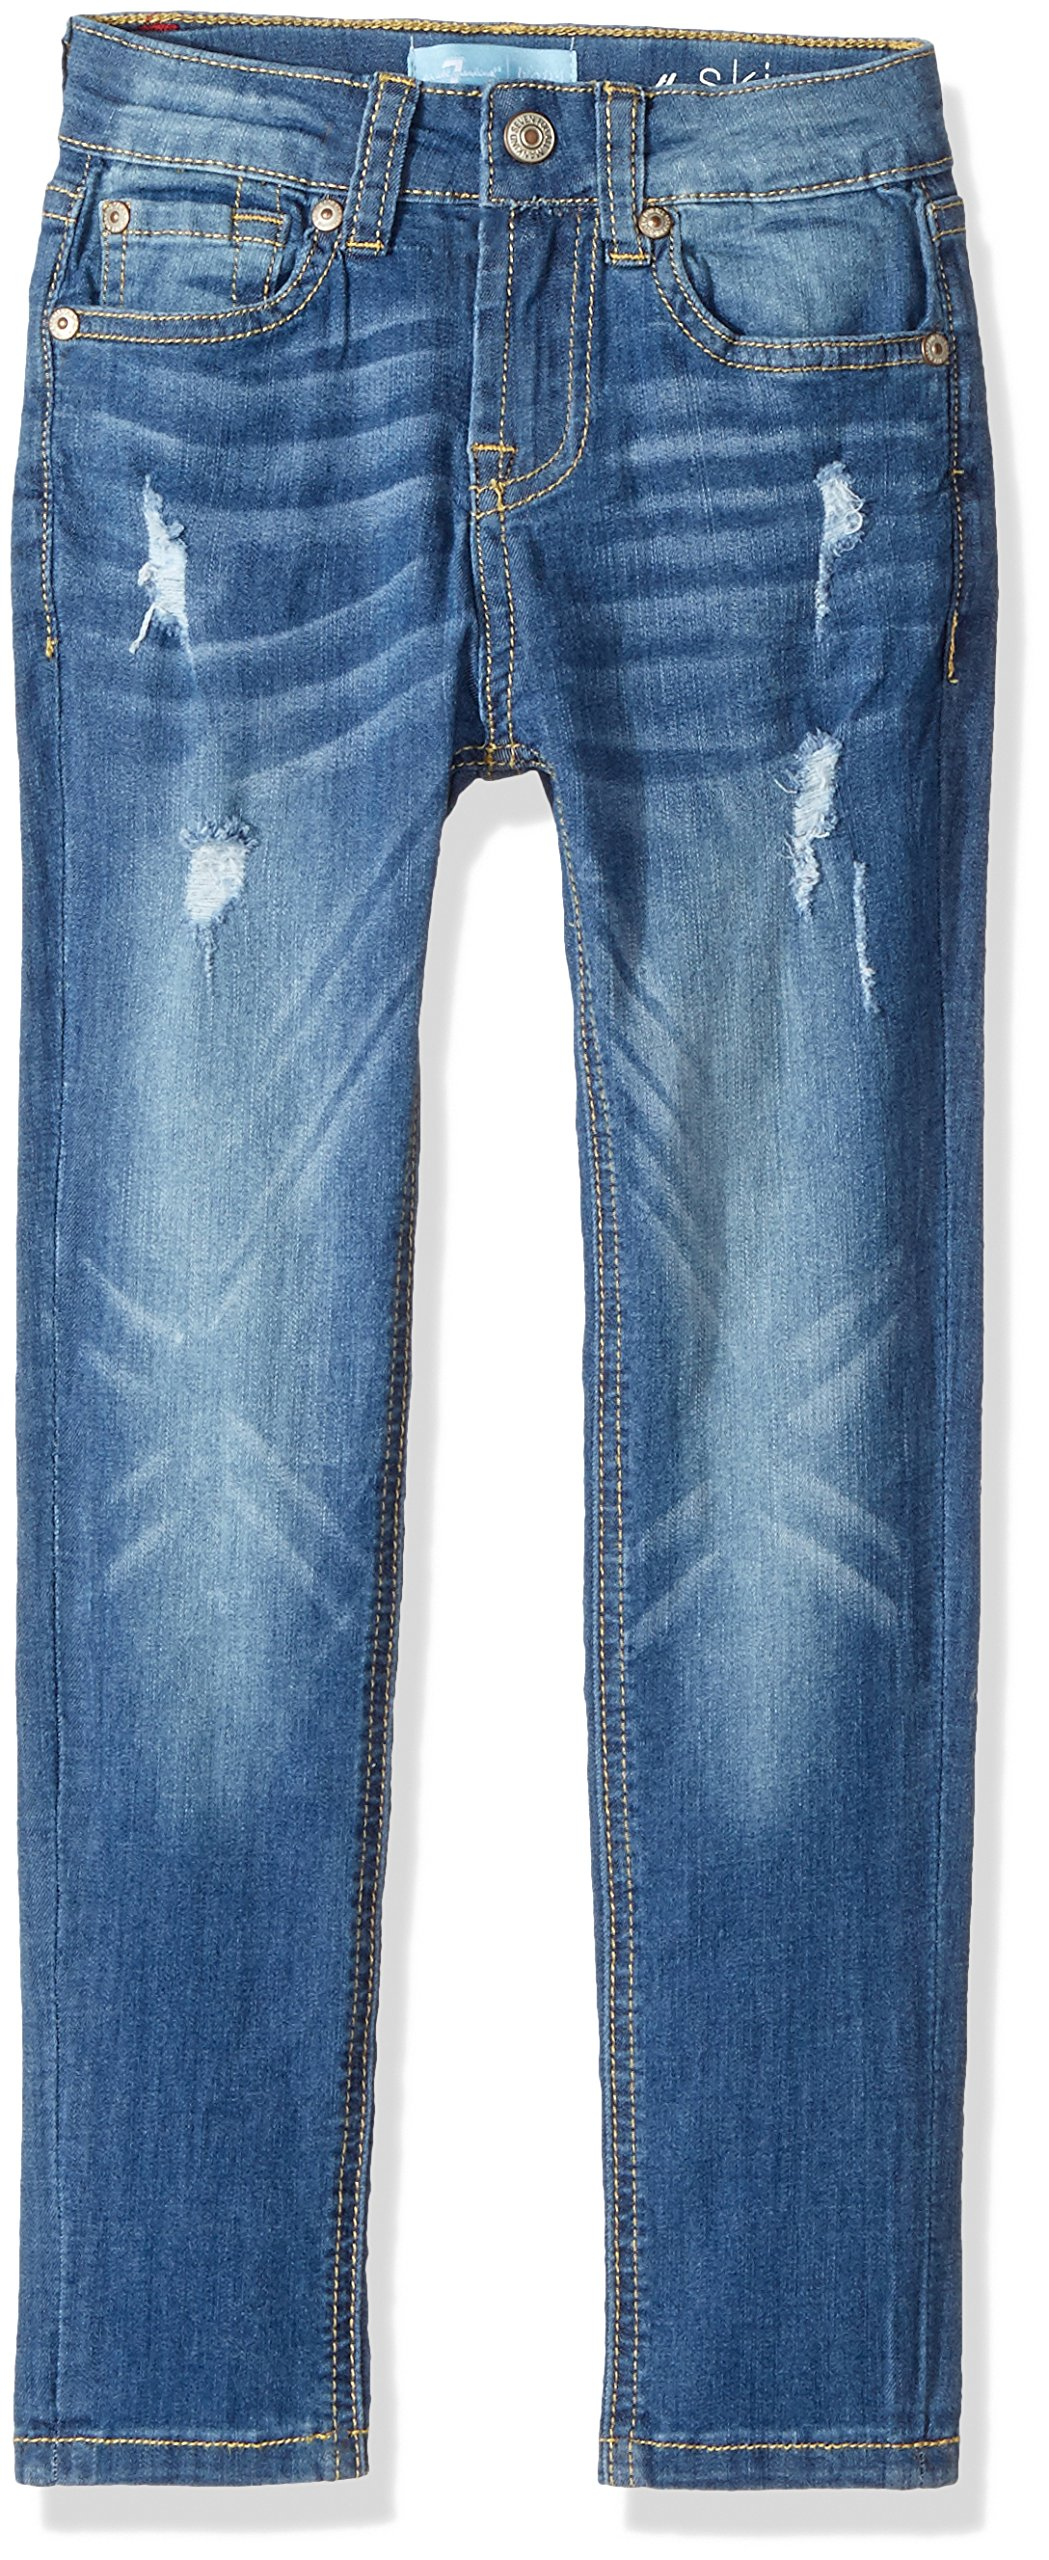 94131ff0a4171 Get Quotations · 7 For All Mankind Girls' Skinny Fit Jean (More Styles  Available)